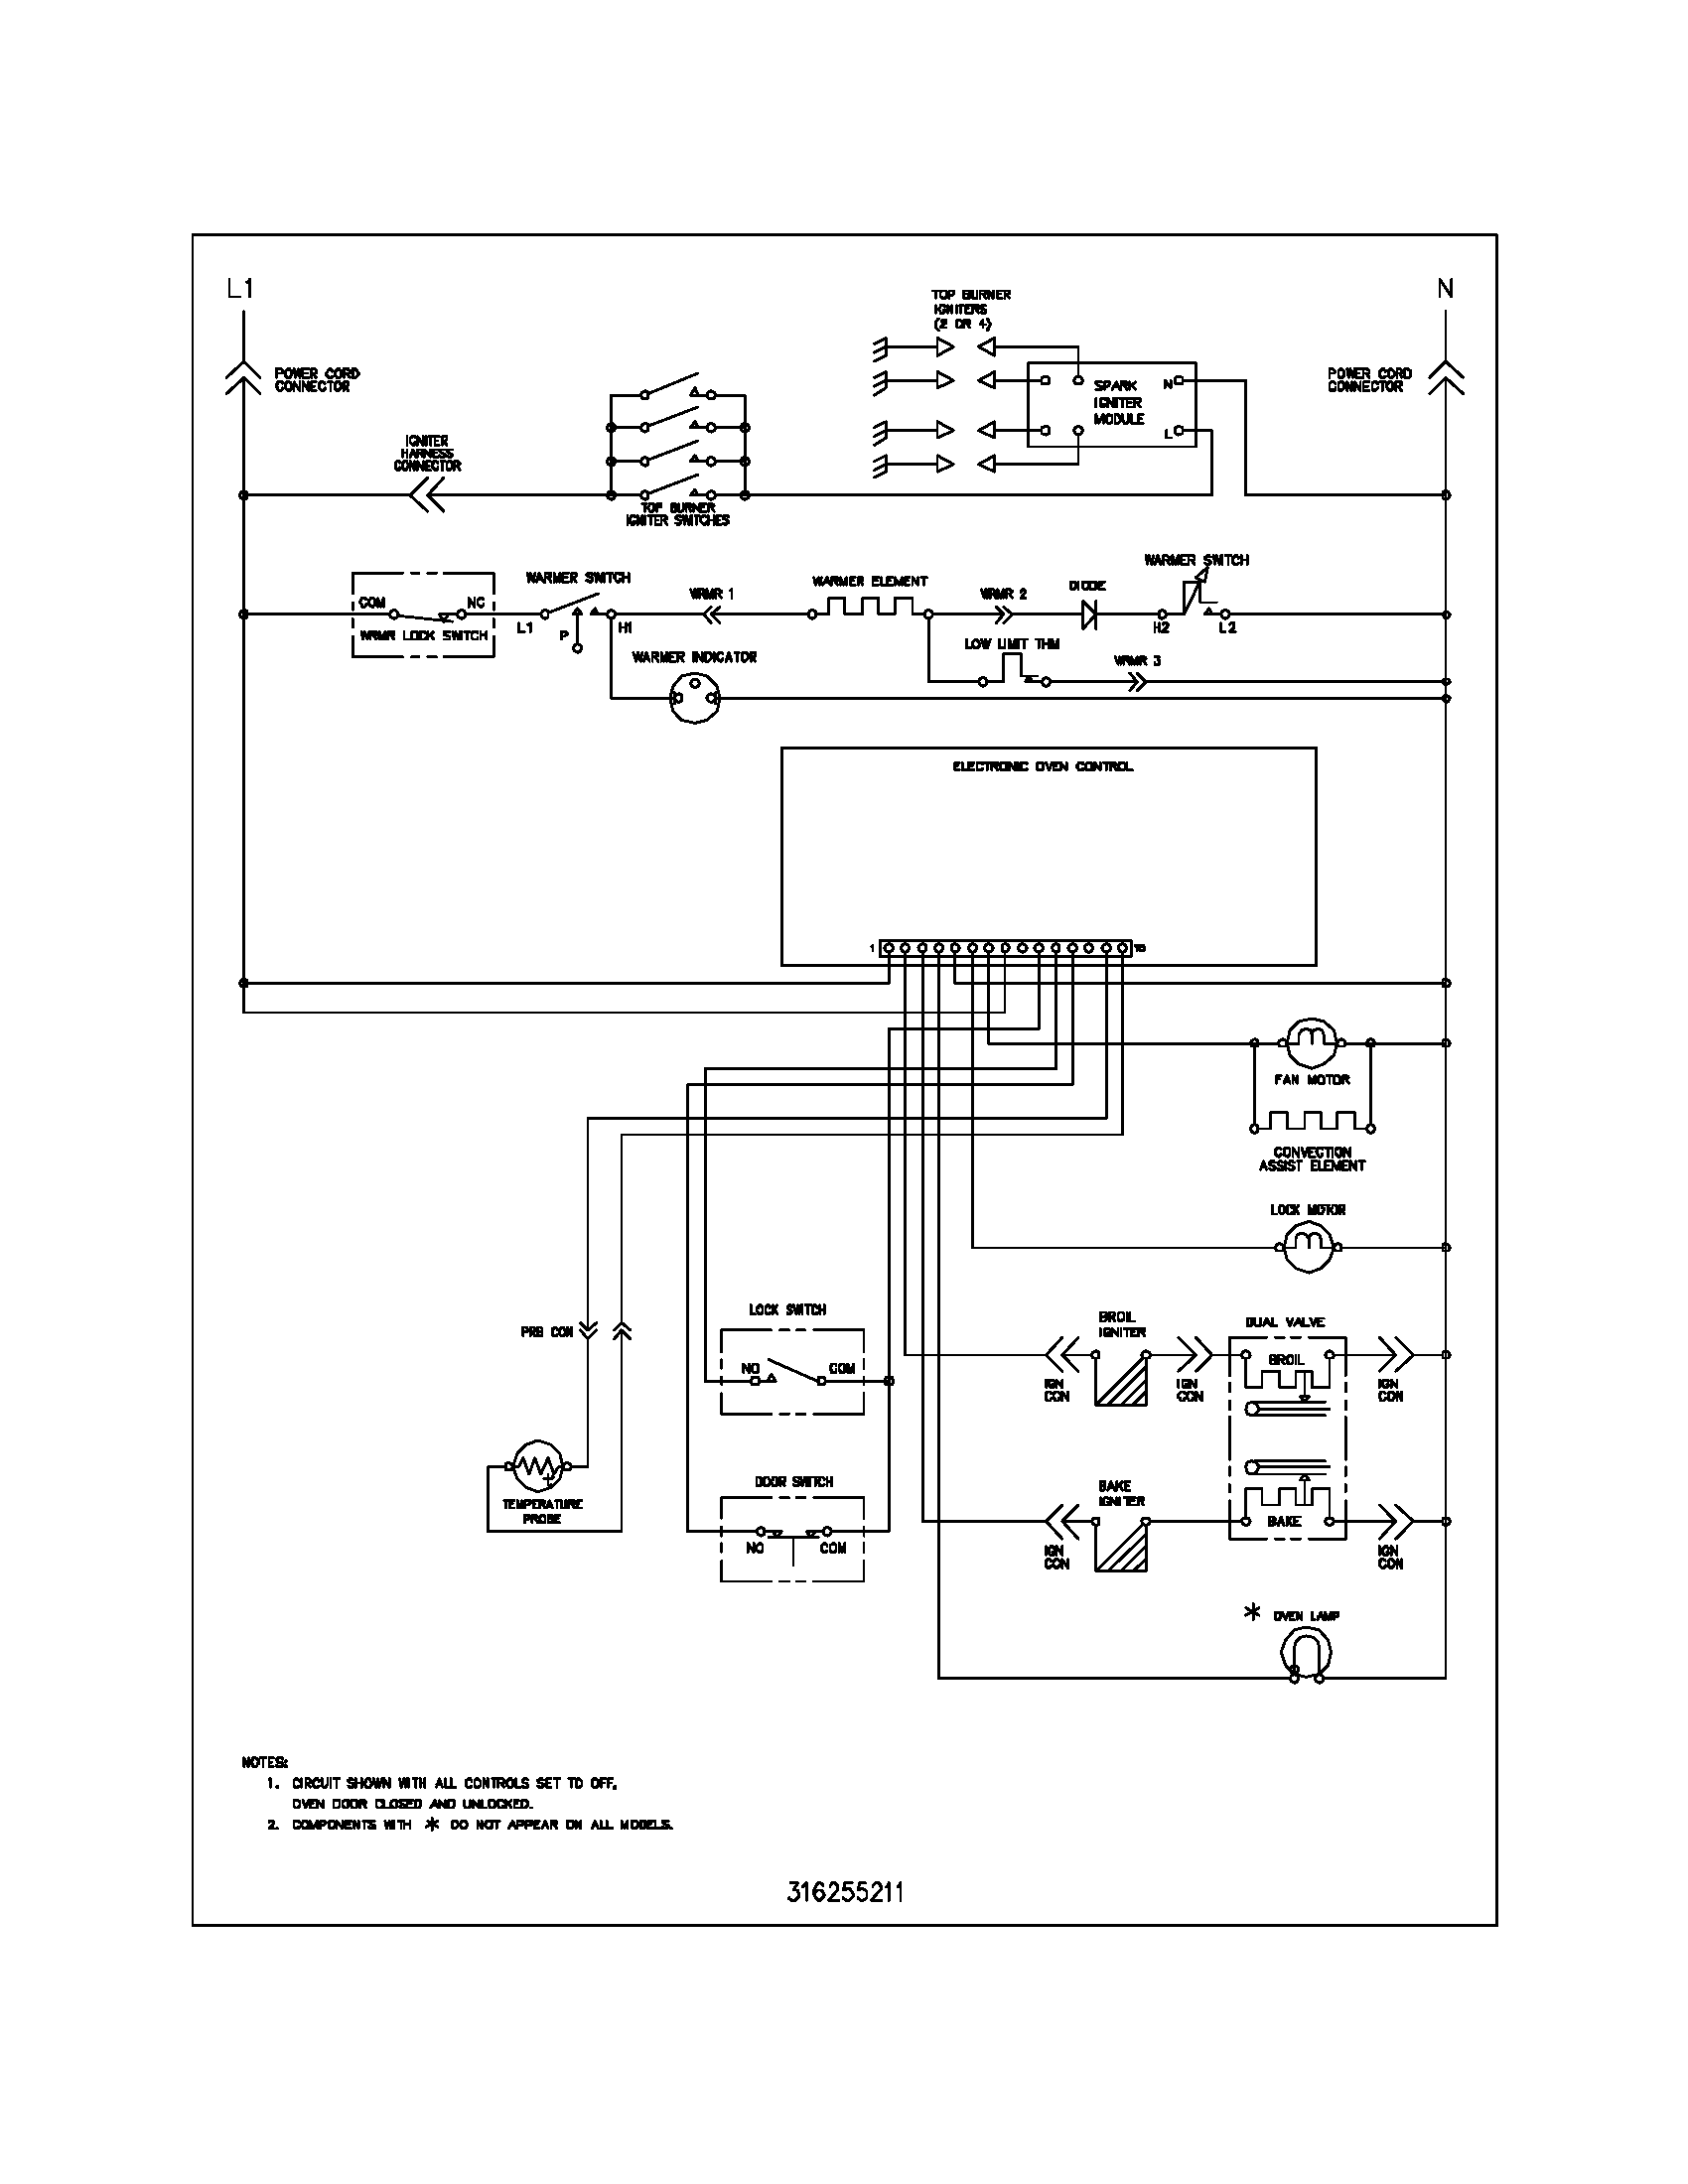 Electronic Ignition Furnace Wiring Diagram Library Frigidaire Heat Pump Plgf389ccc Gas Range Schematic Parts